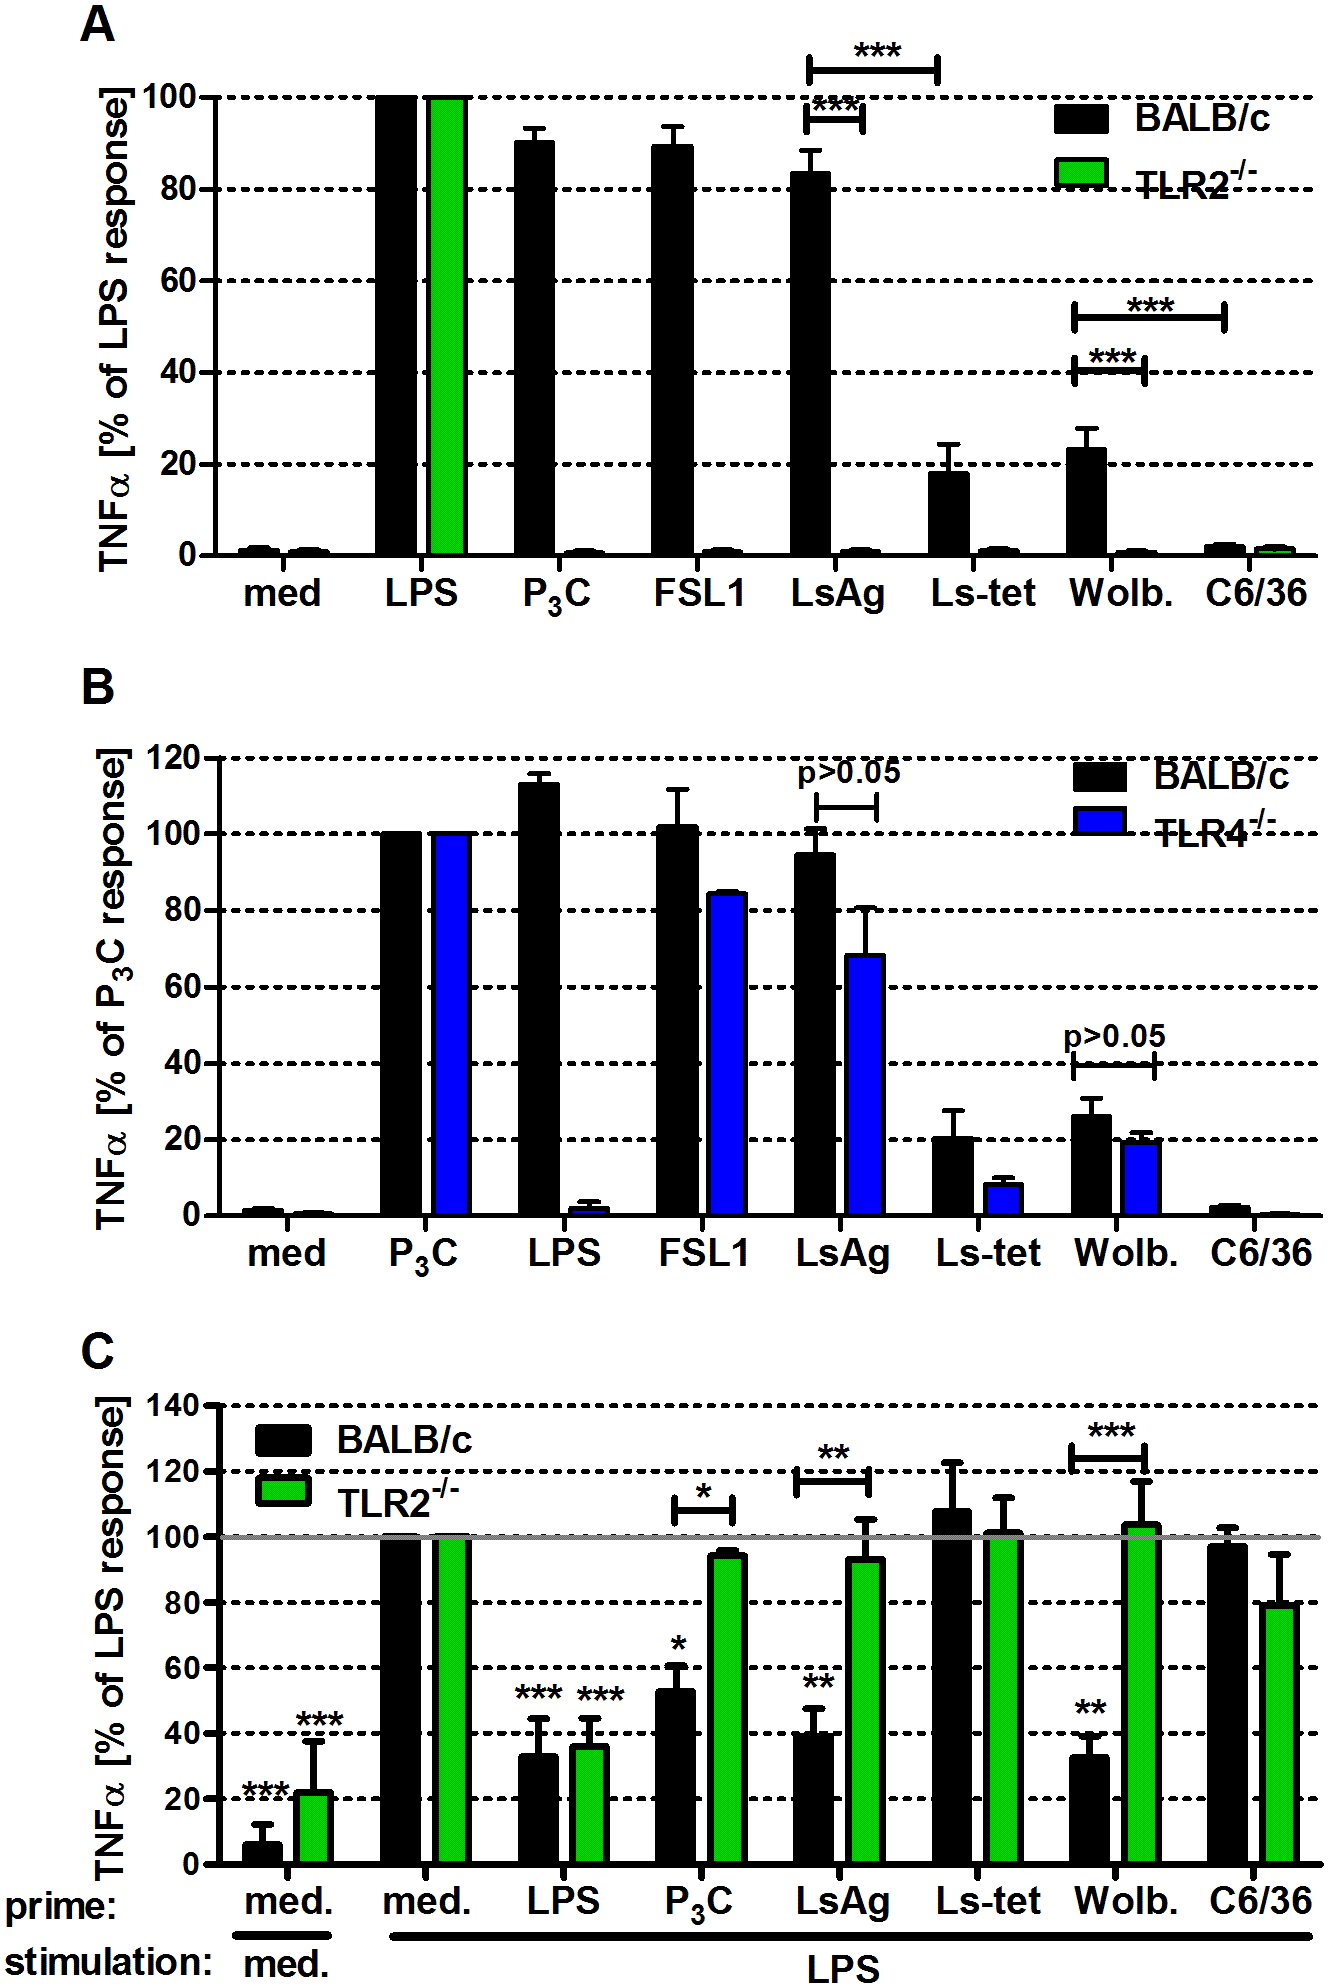 Macrophage stimulation with <i>Wolbachia</i>-containing preparations induces TLR2-dependent TNFα secretion and tolerance to subsequent LPS stimulation.